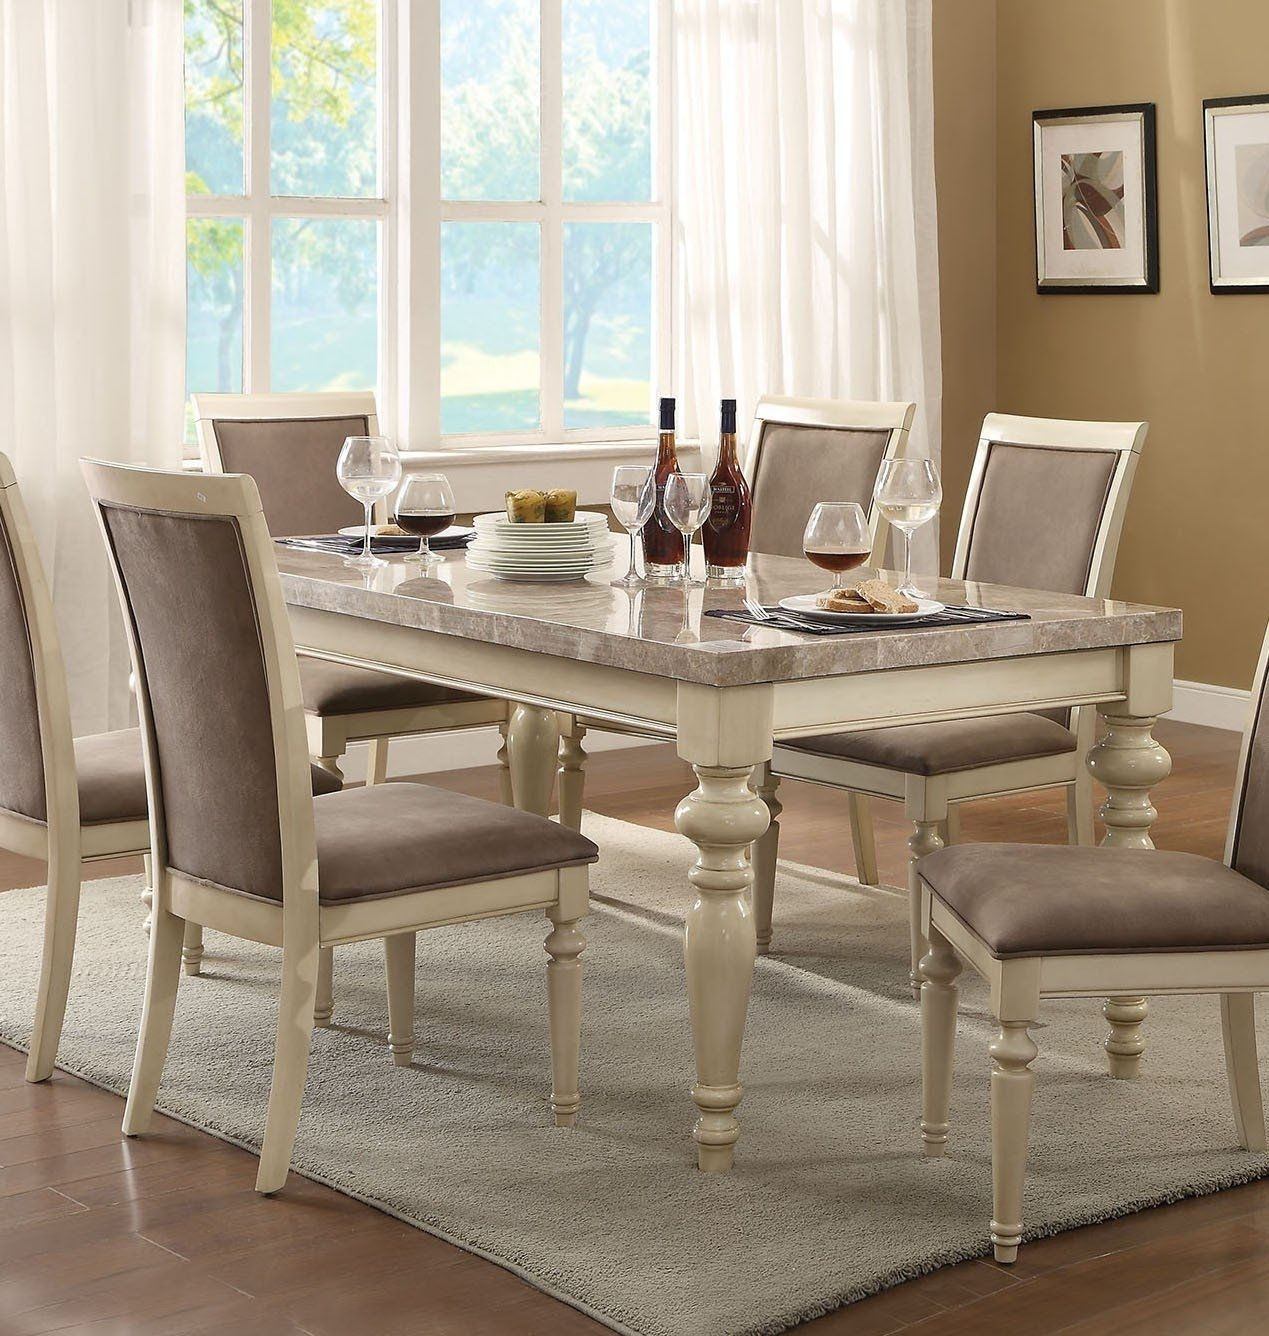 Acme 71705 Ryder Antique White Marble Top Dining Table | Home Inside Newest Caira Black 7 Piece Dining Sets With Arm Chairs & Diamond Back Chairs (View 9 of 20)